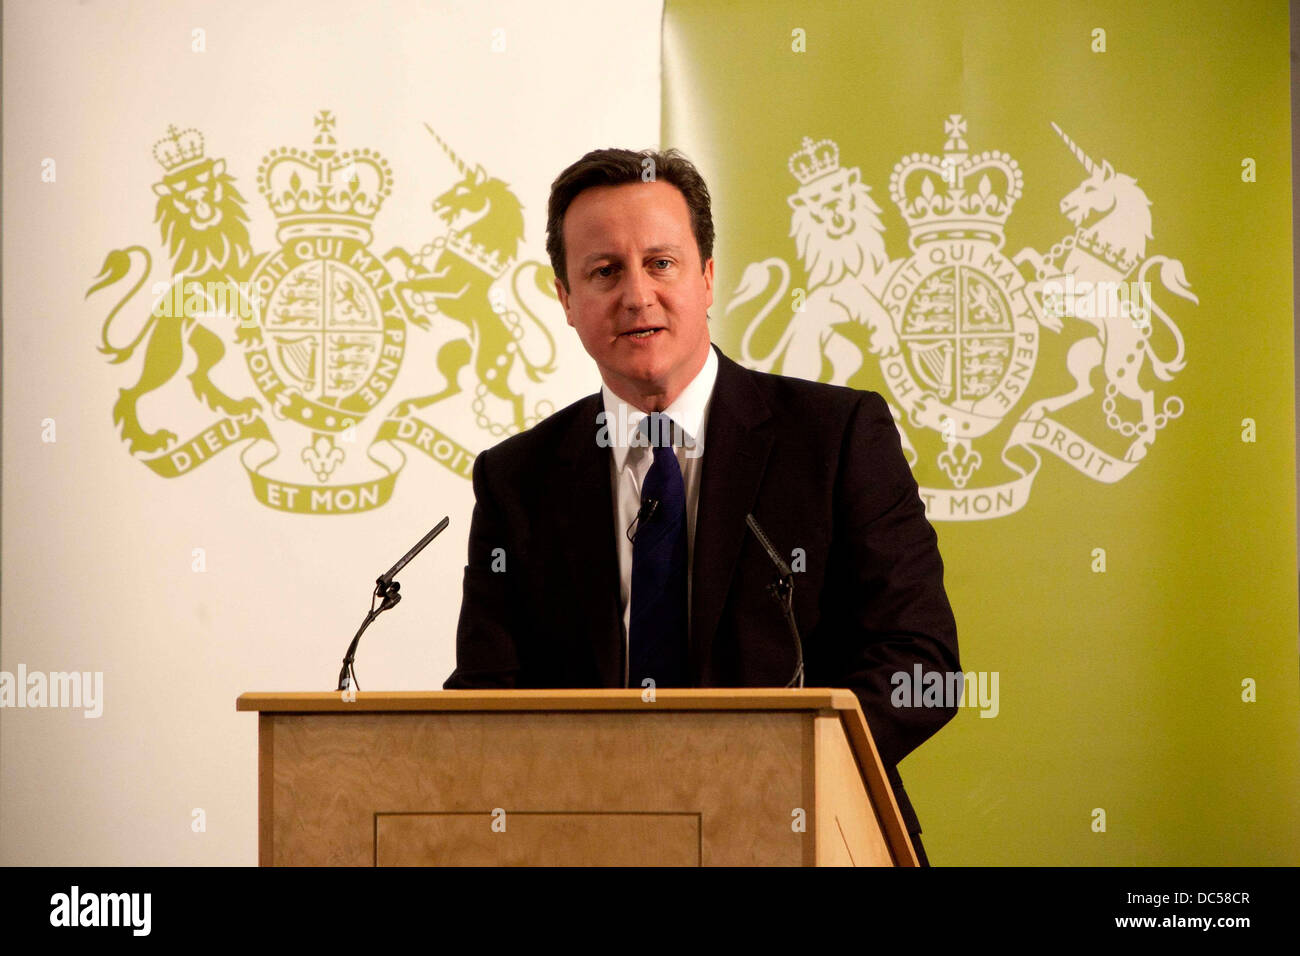 Prime Minister David Cameron addresses invited guests and members of the press at the Manchester Central Convention - Stock Image